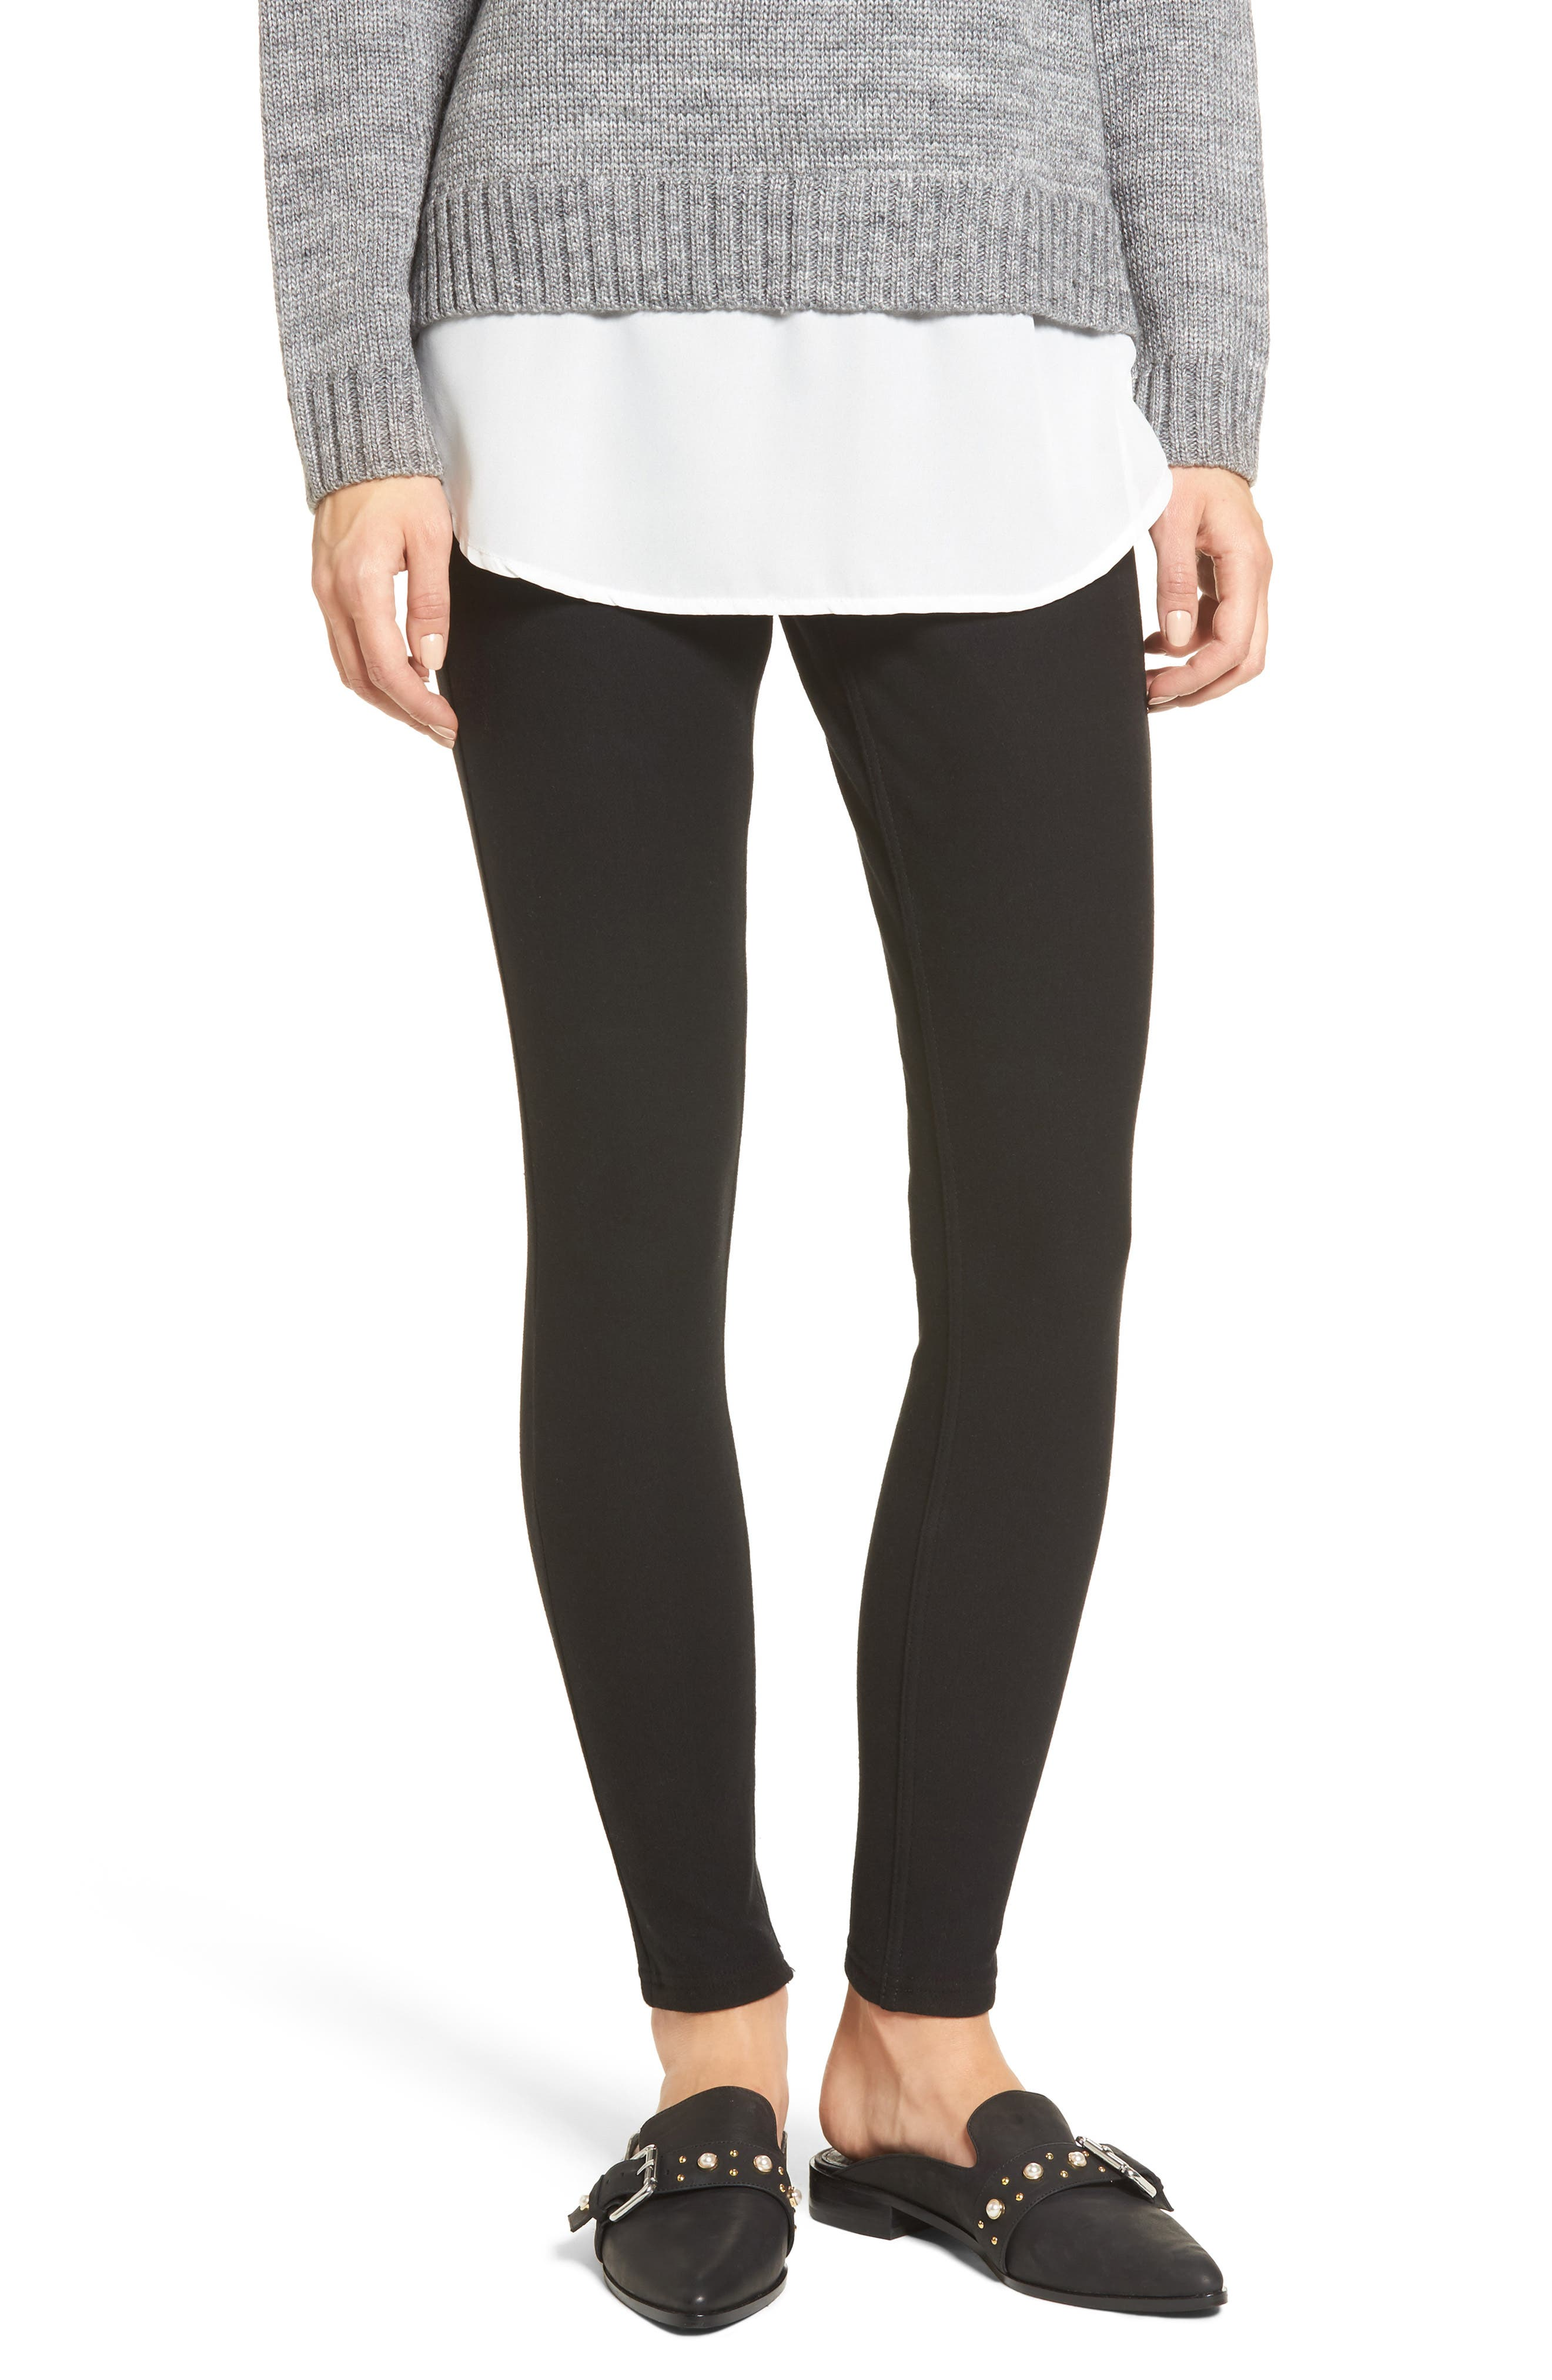 Alternate Image 1 Selected - Hue Fleece Lined Leggings